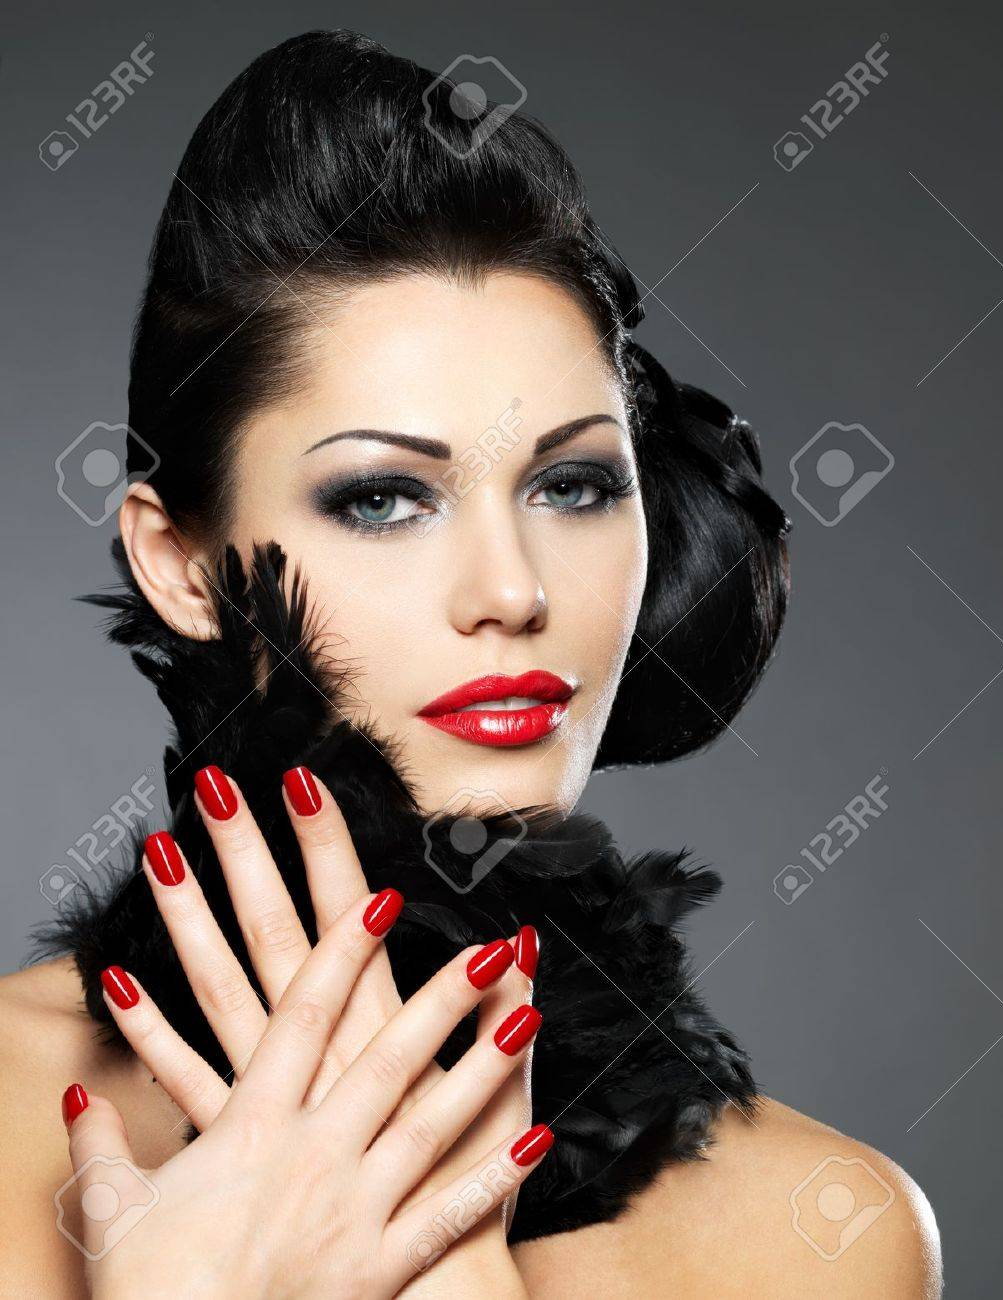 Beautiful fashion woman with red nails, creative hairstyle and makeup - Model posing in studio Stock Photo - 16642944